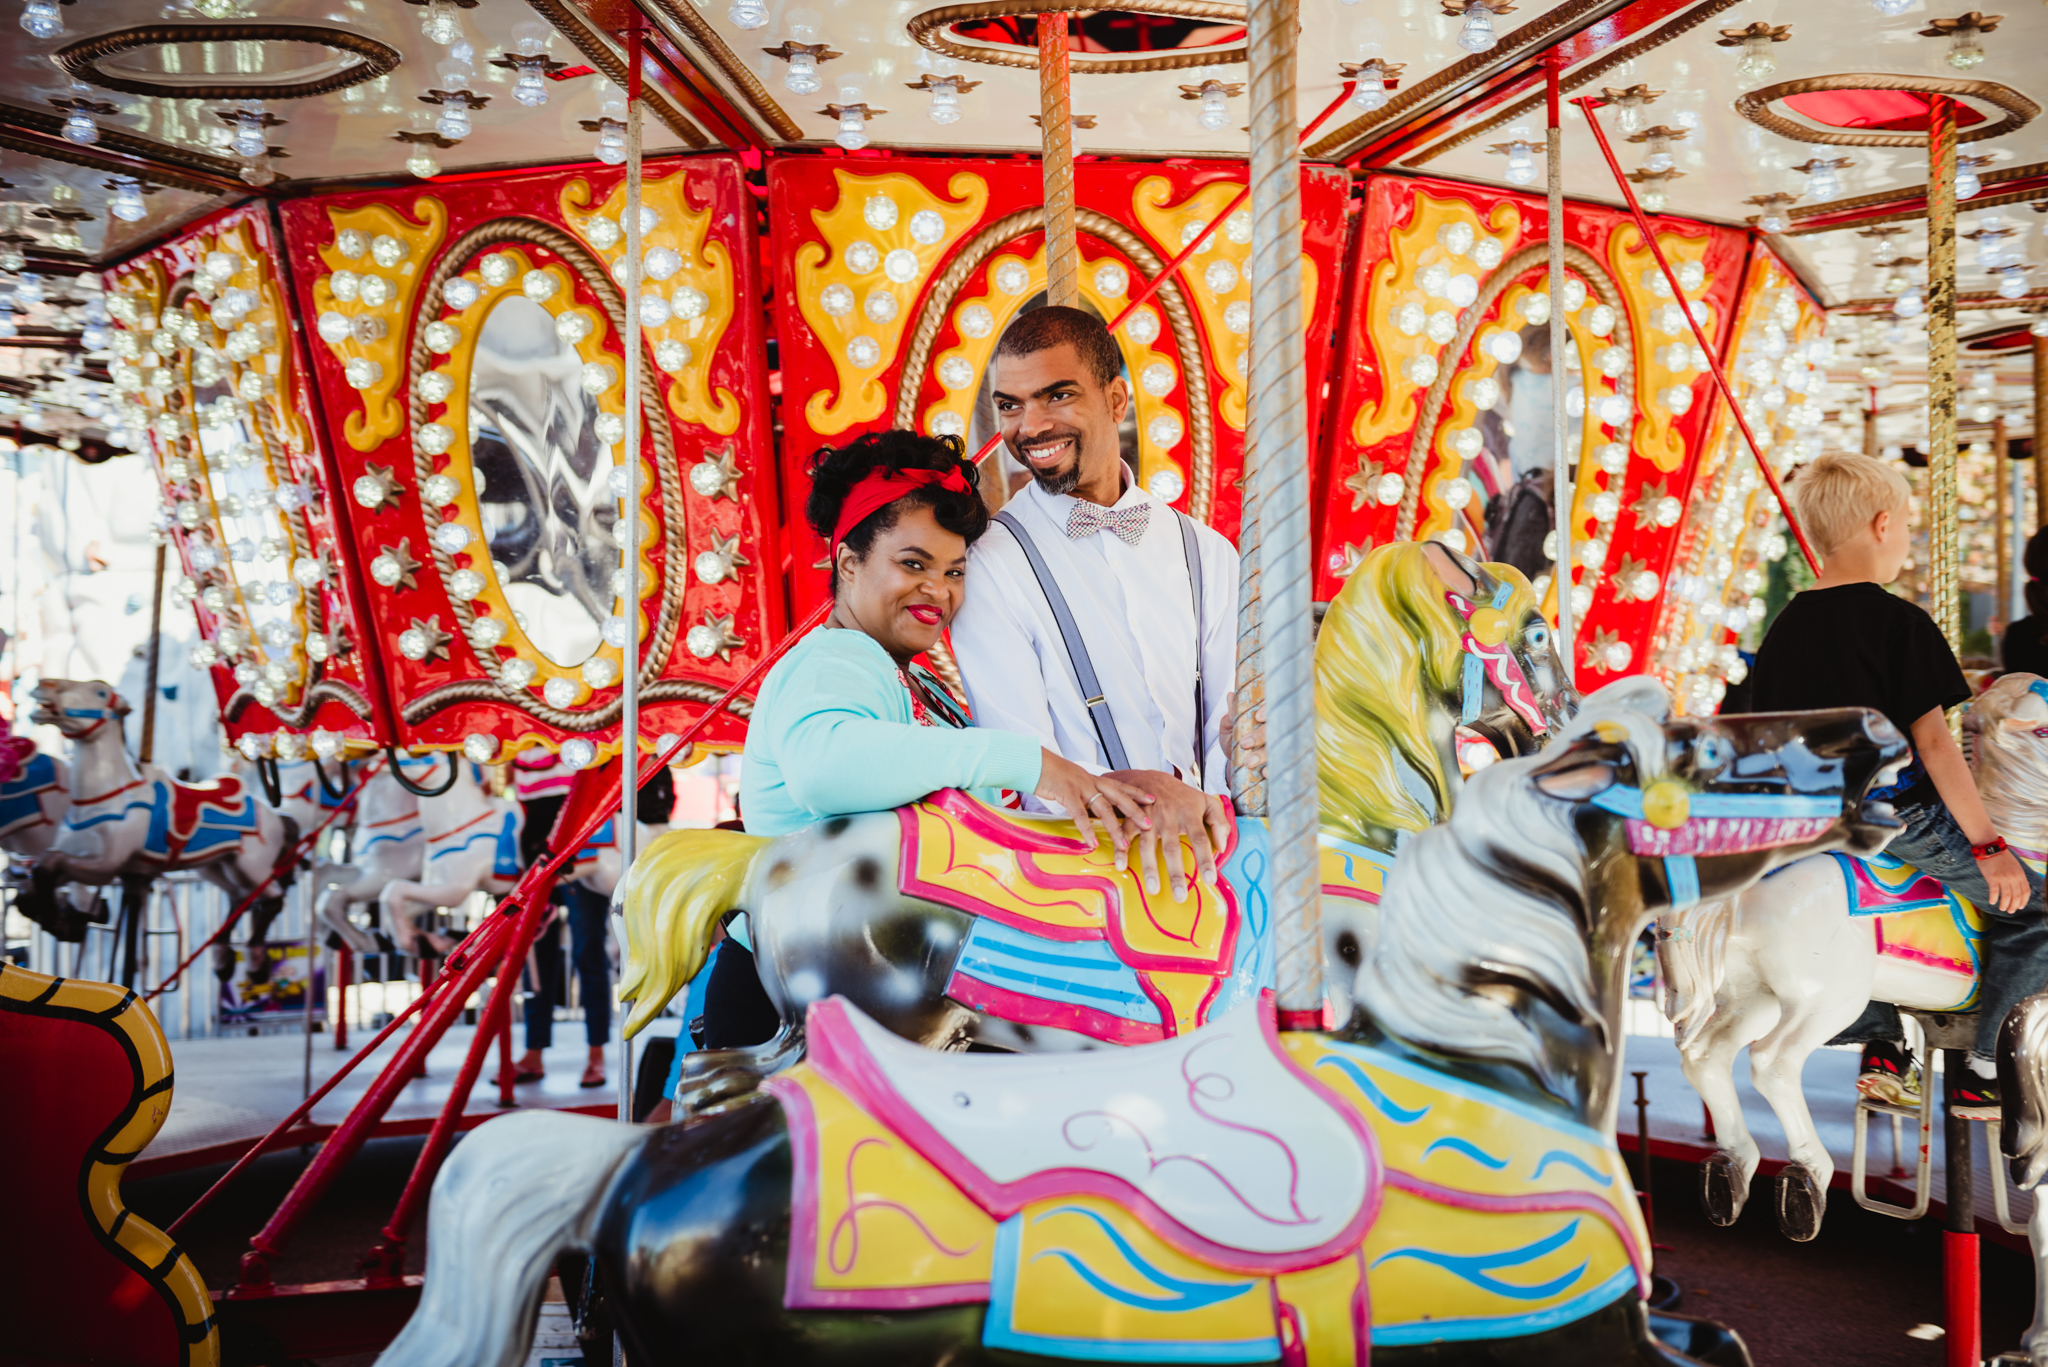 so-in-love-while-riding-the-carousel-at-the-NC-State-fair.jpg